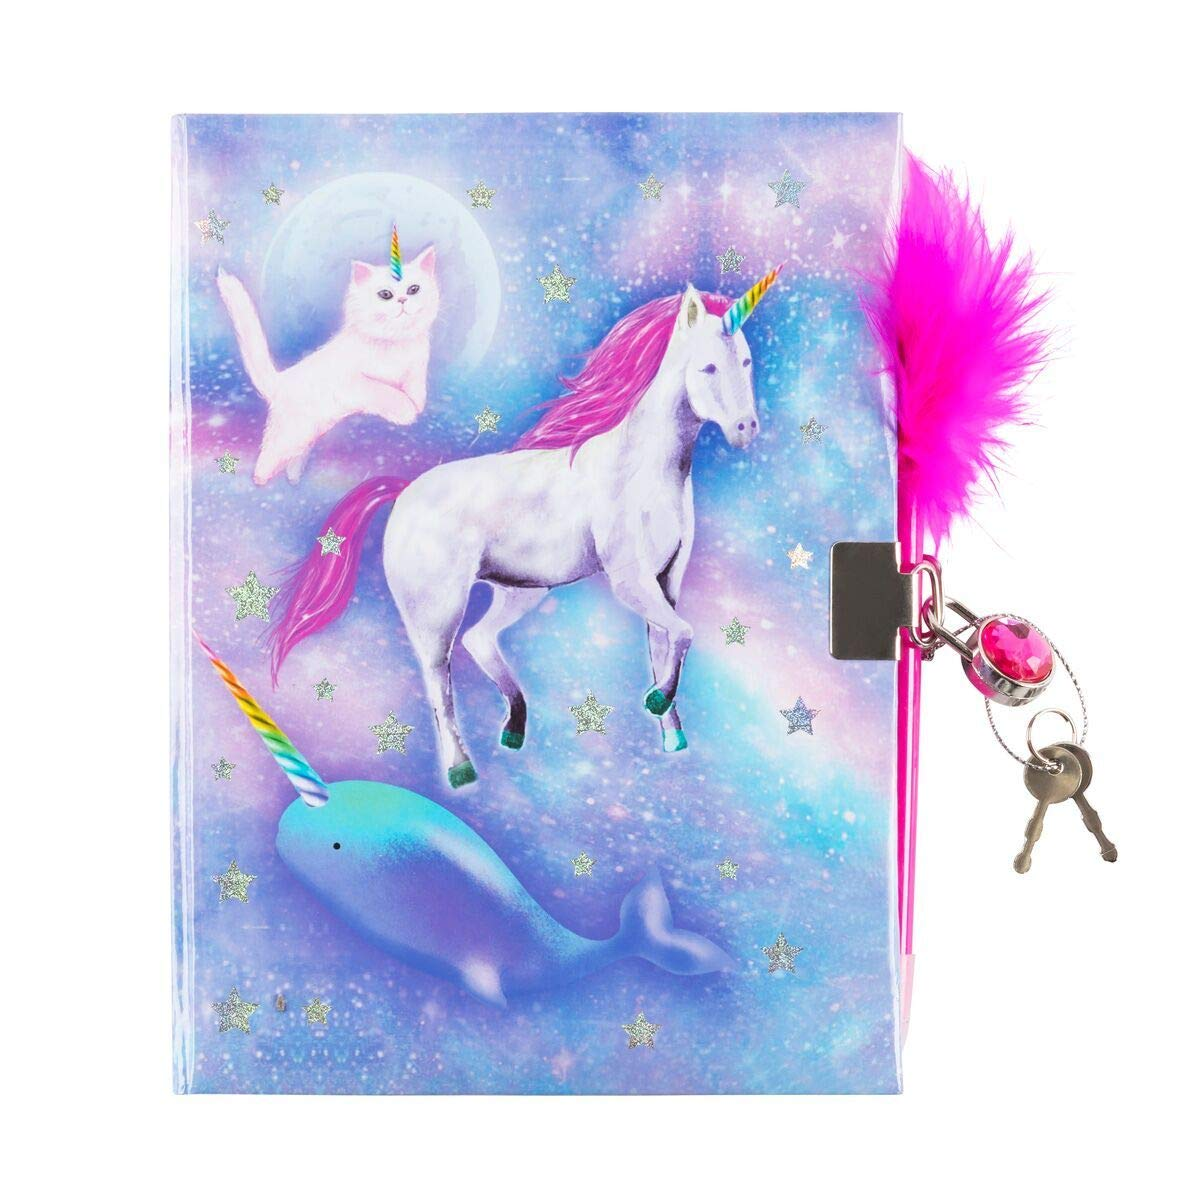 3C4G Celestial Unicorn Dreams Children's Journal with Gem Lock and Feather Pen (36060) 3C4G Three Cheers For Girls